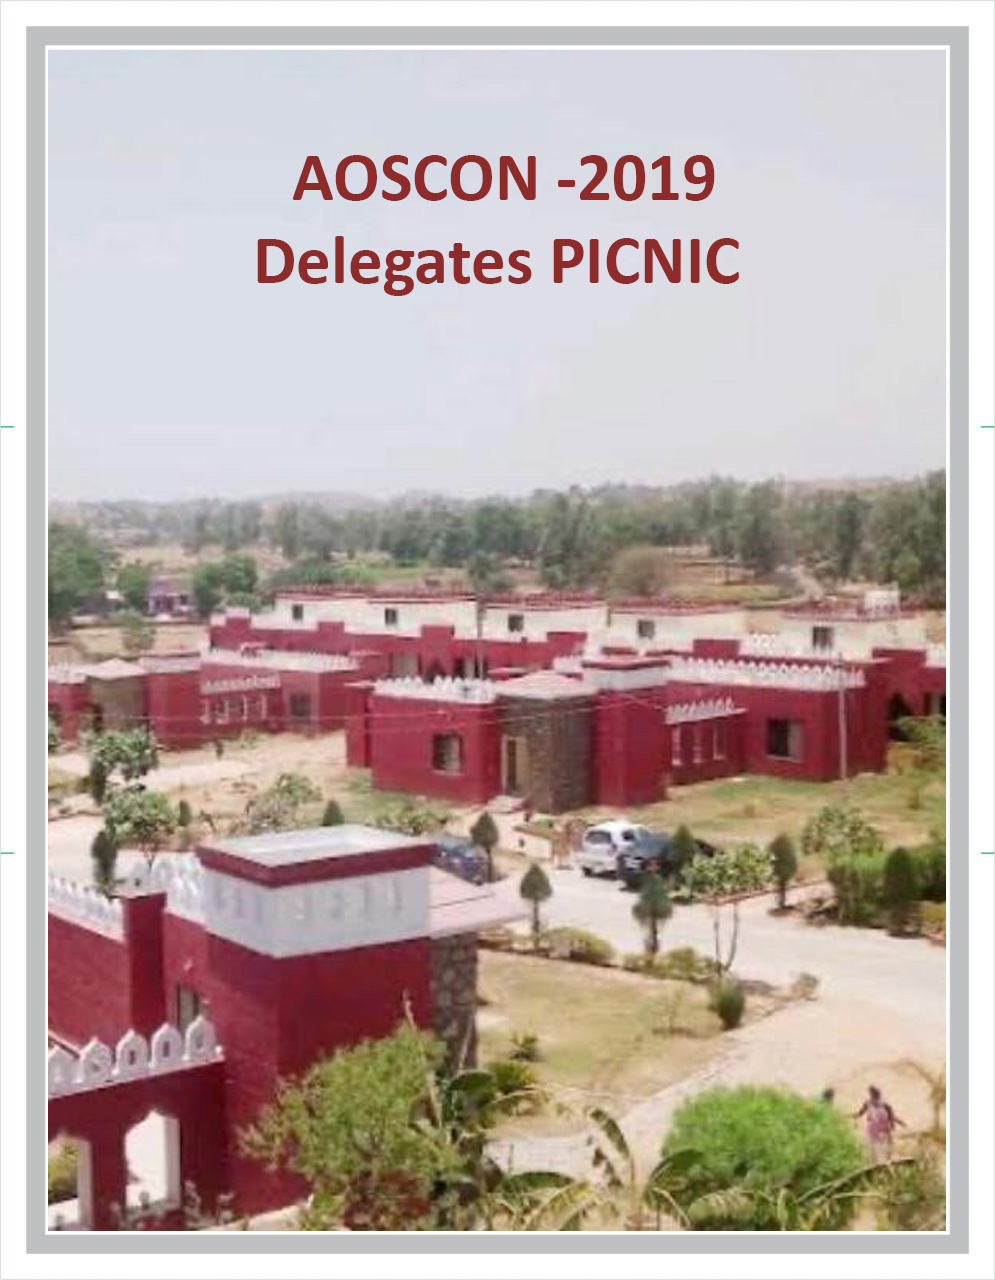 PICNIC for AOSCON -2019 Delegates